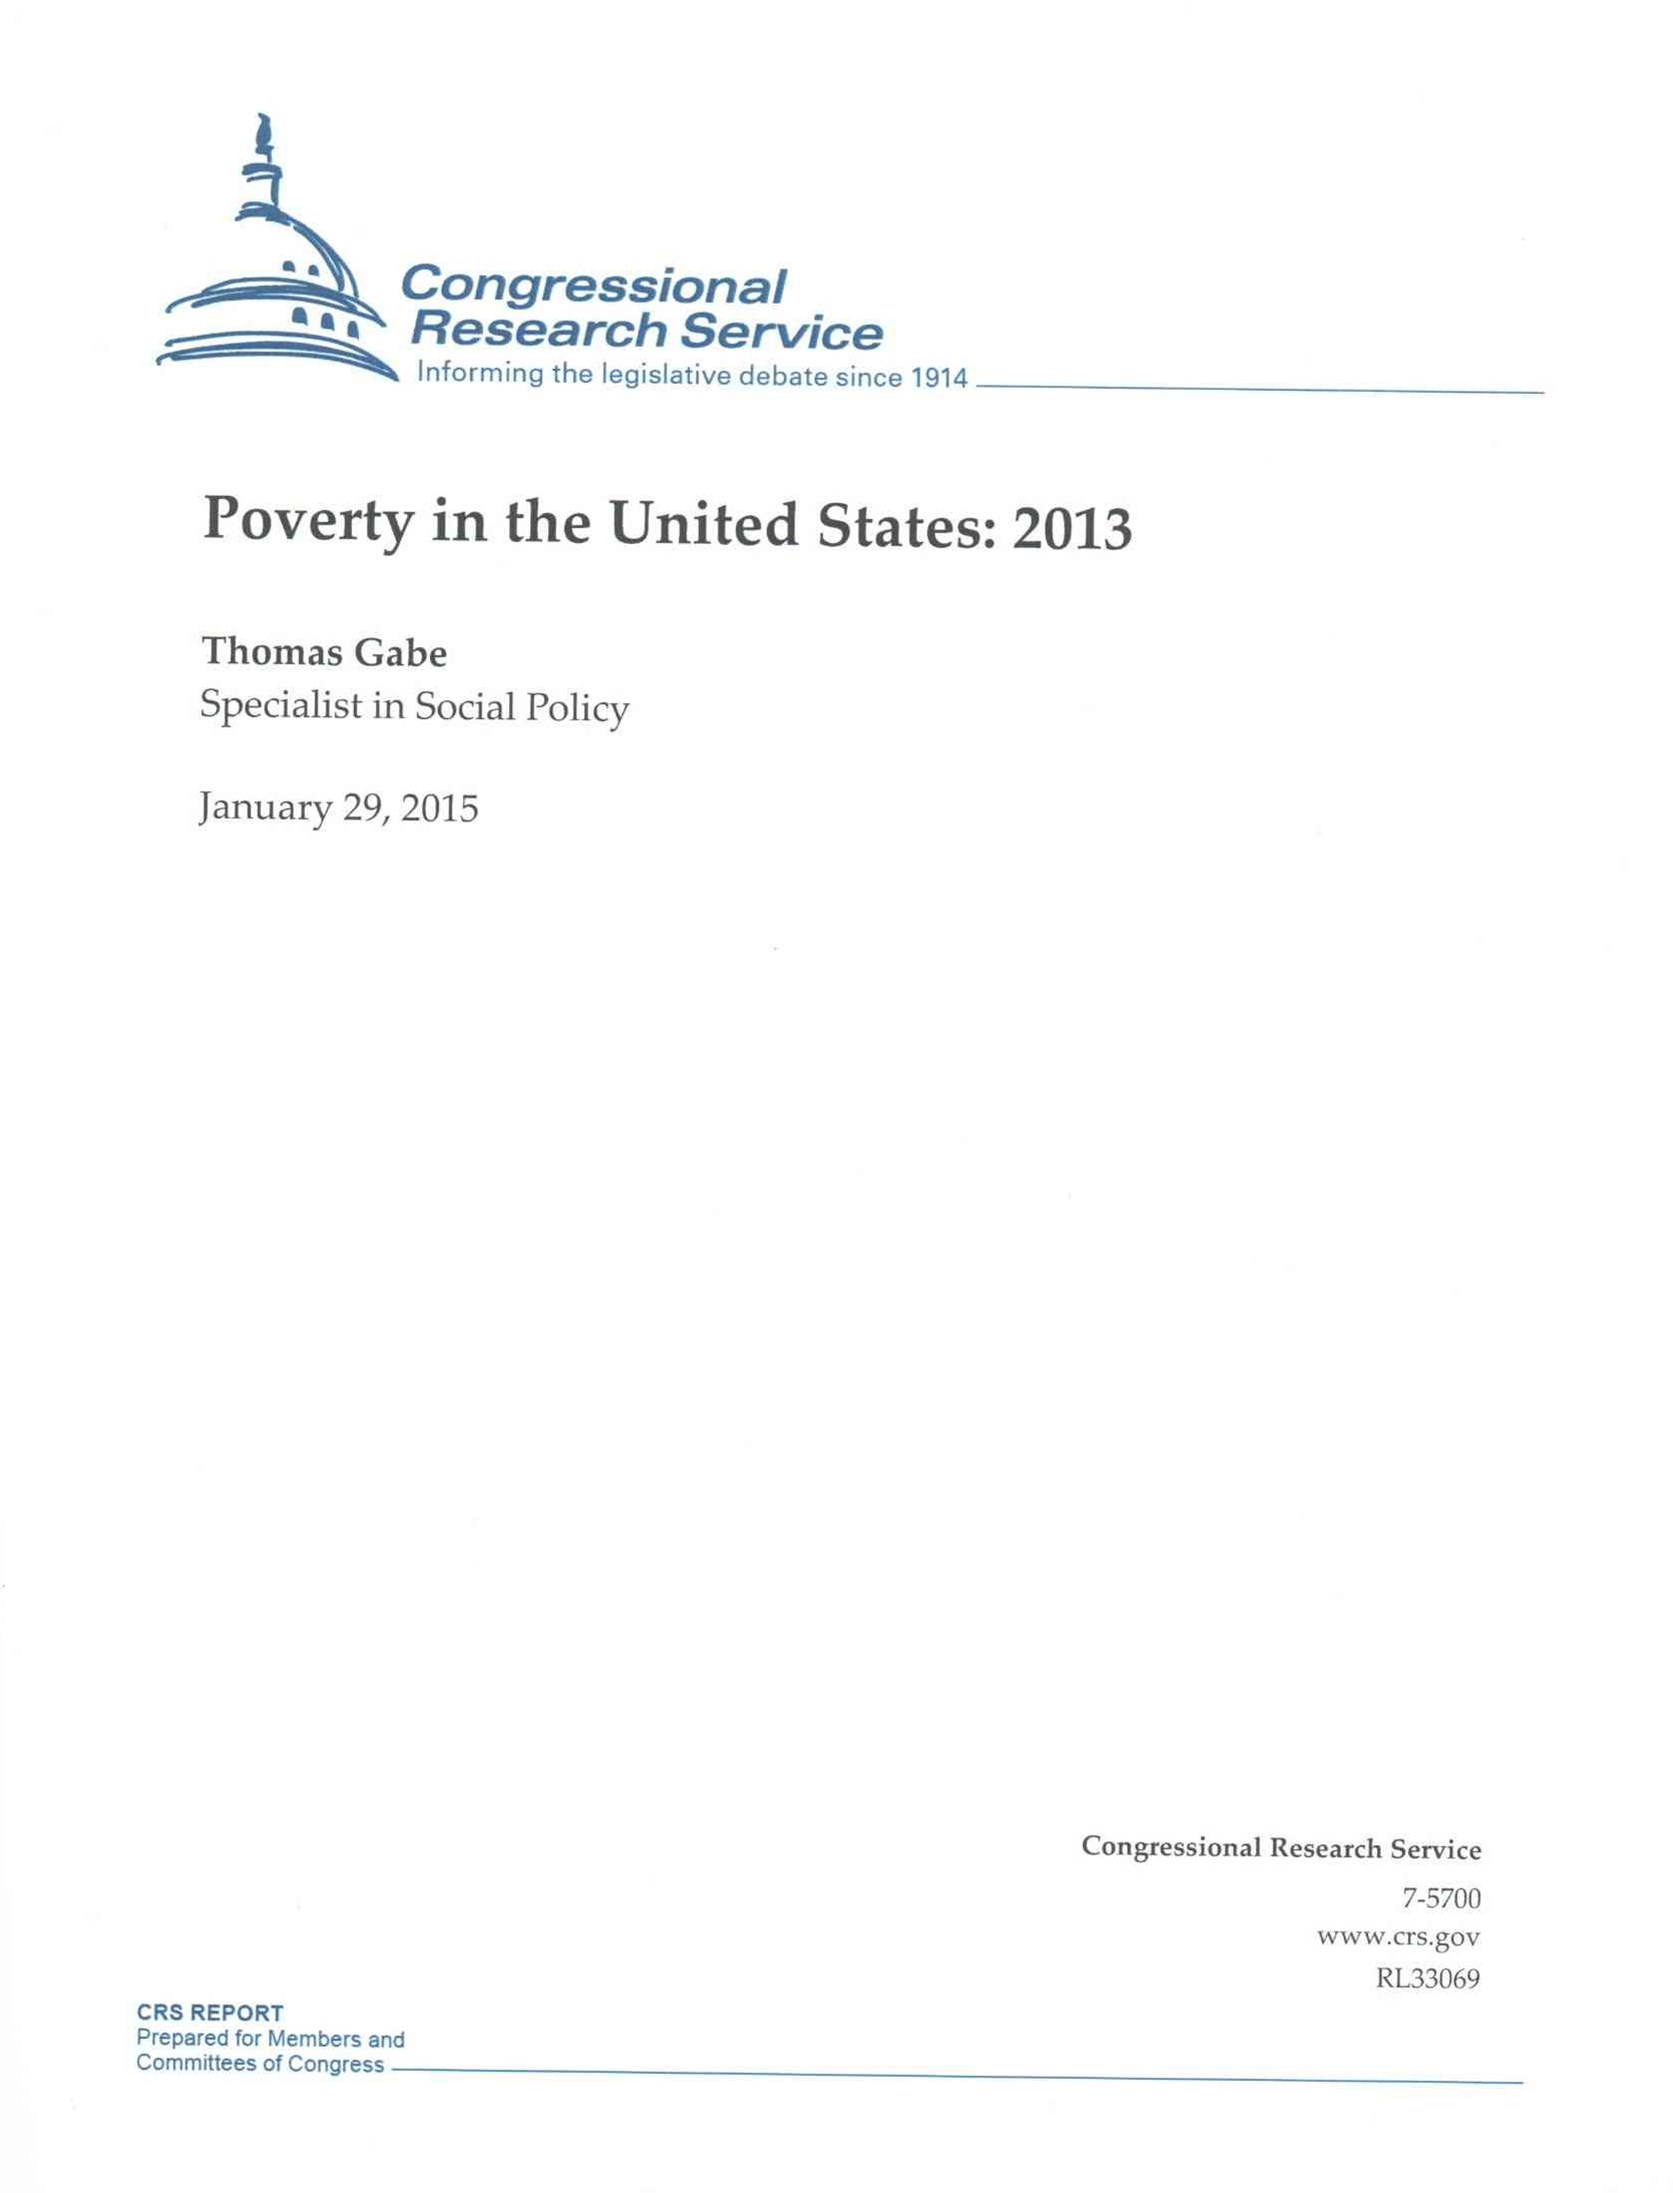 Poverty in the United States: 2013